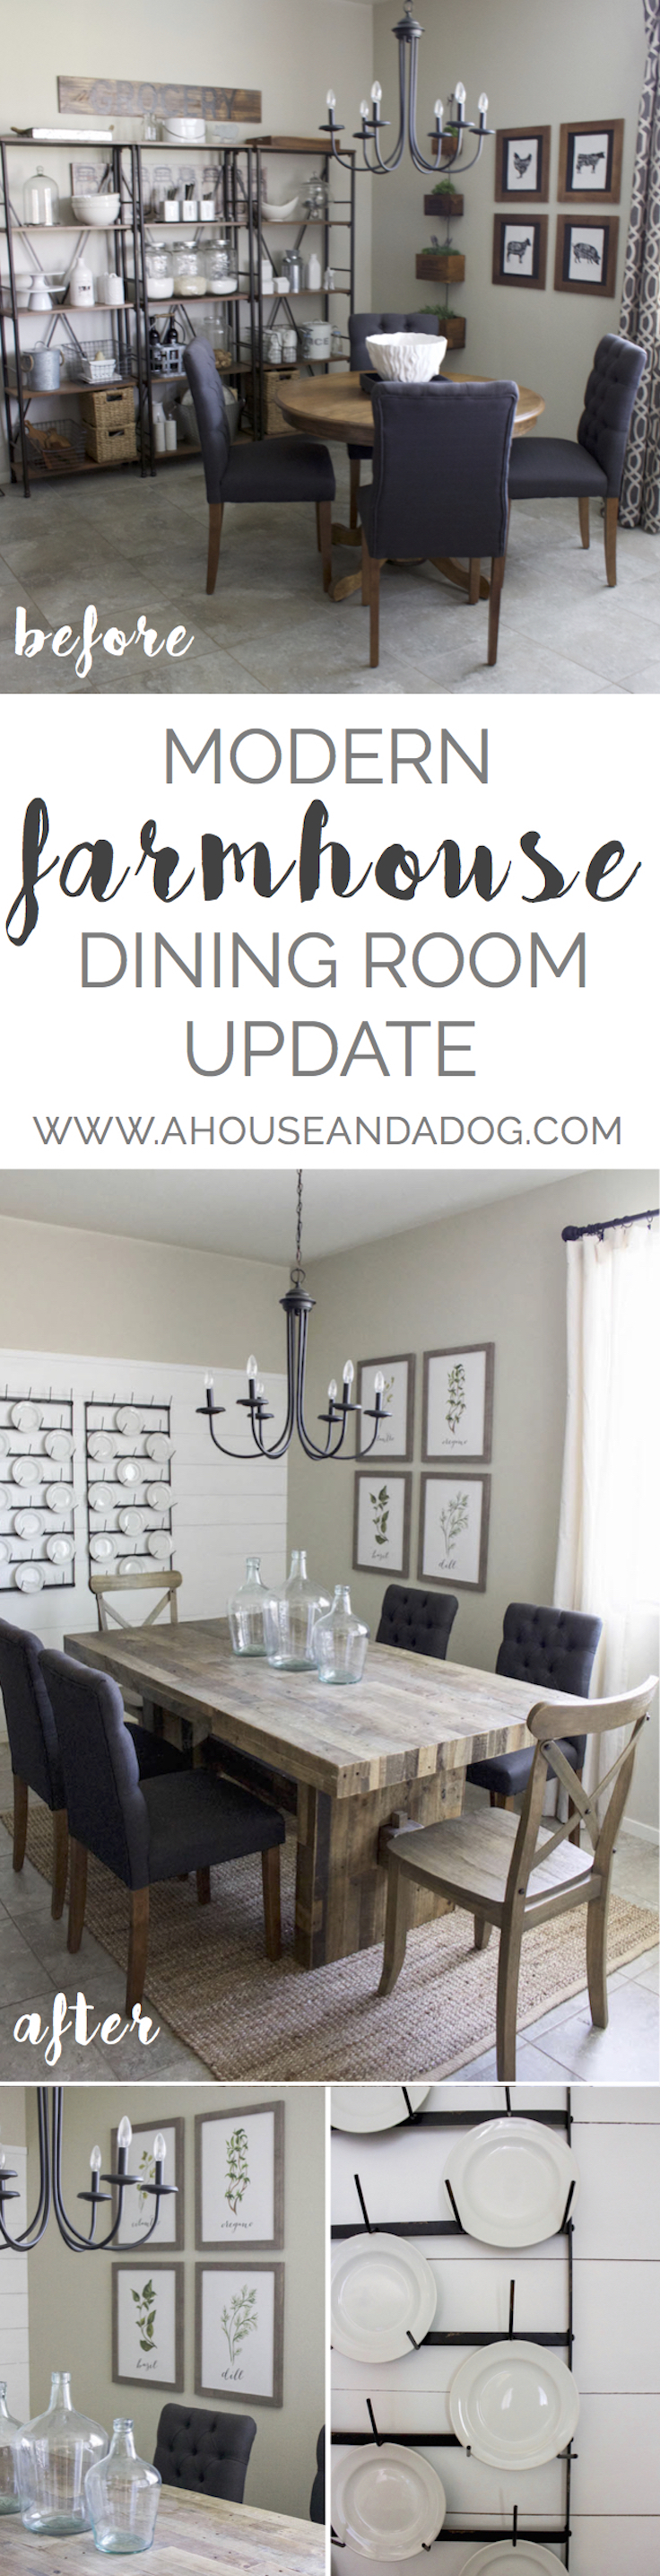 modern farmhouse dining update